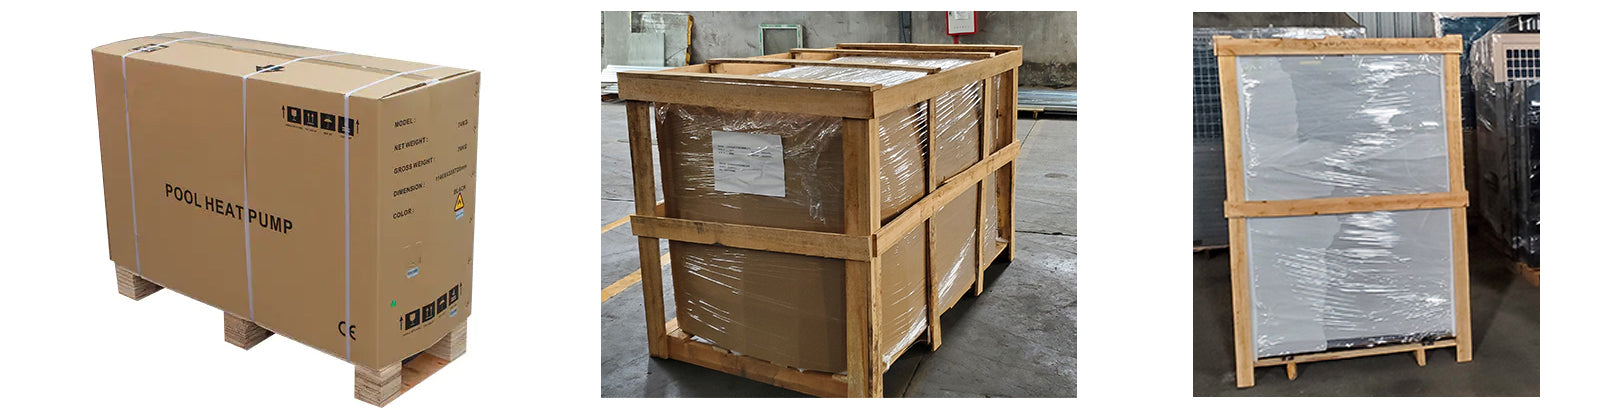 Different pool heat pump packaging materials